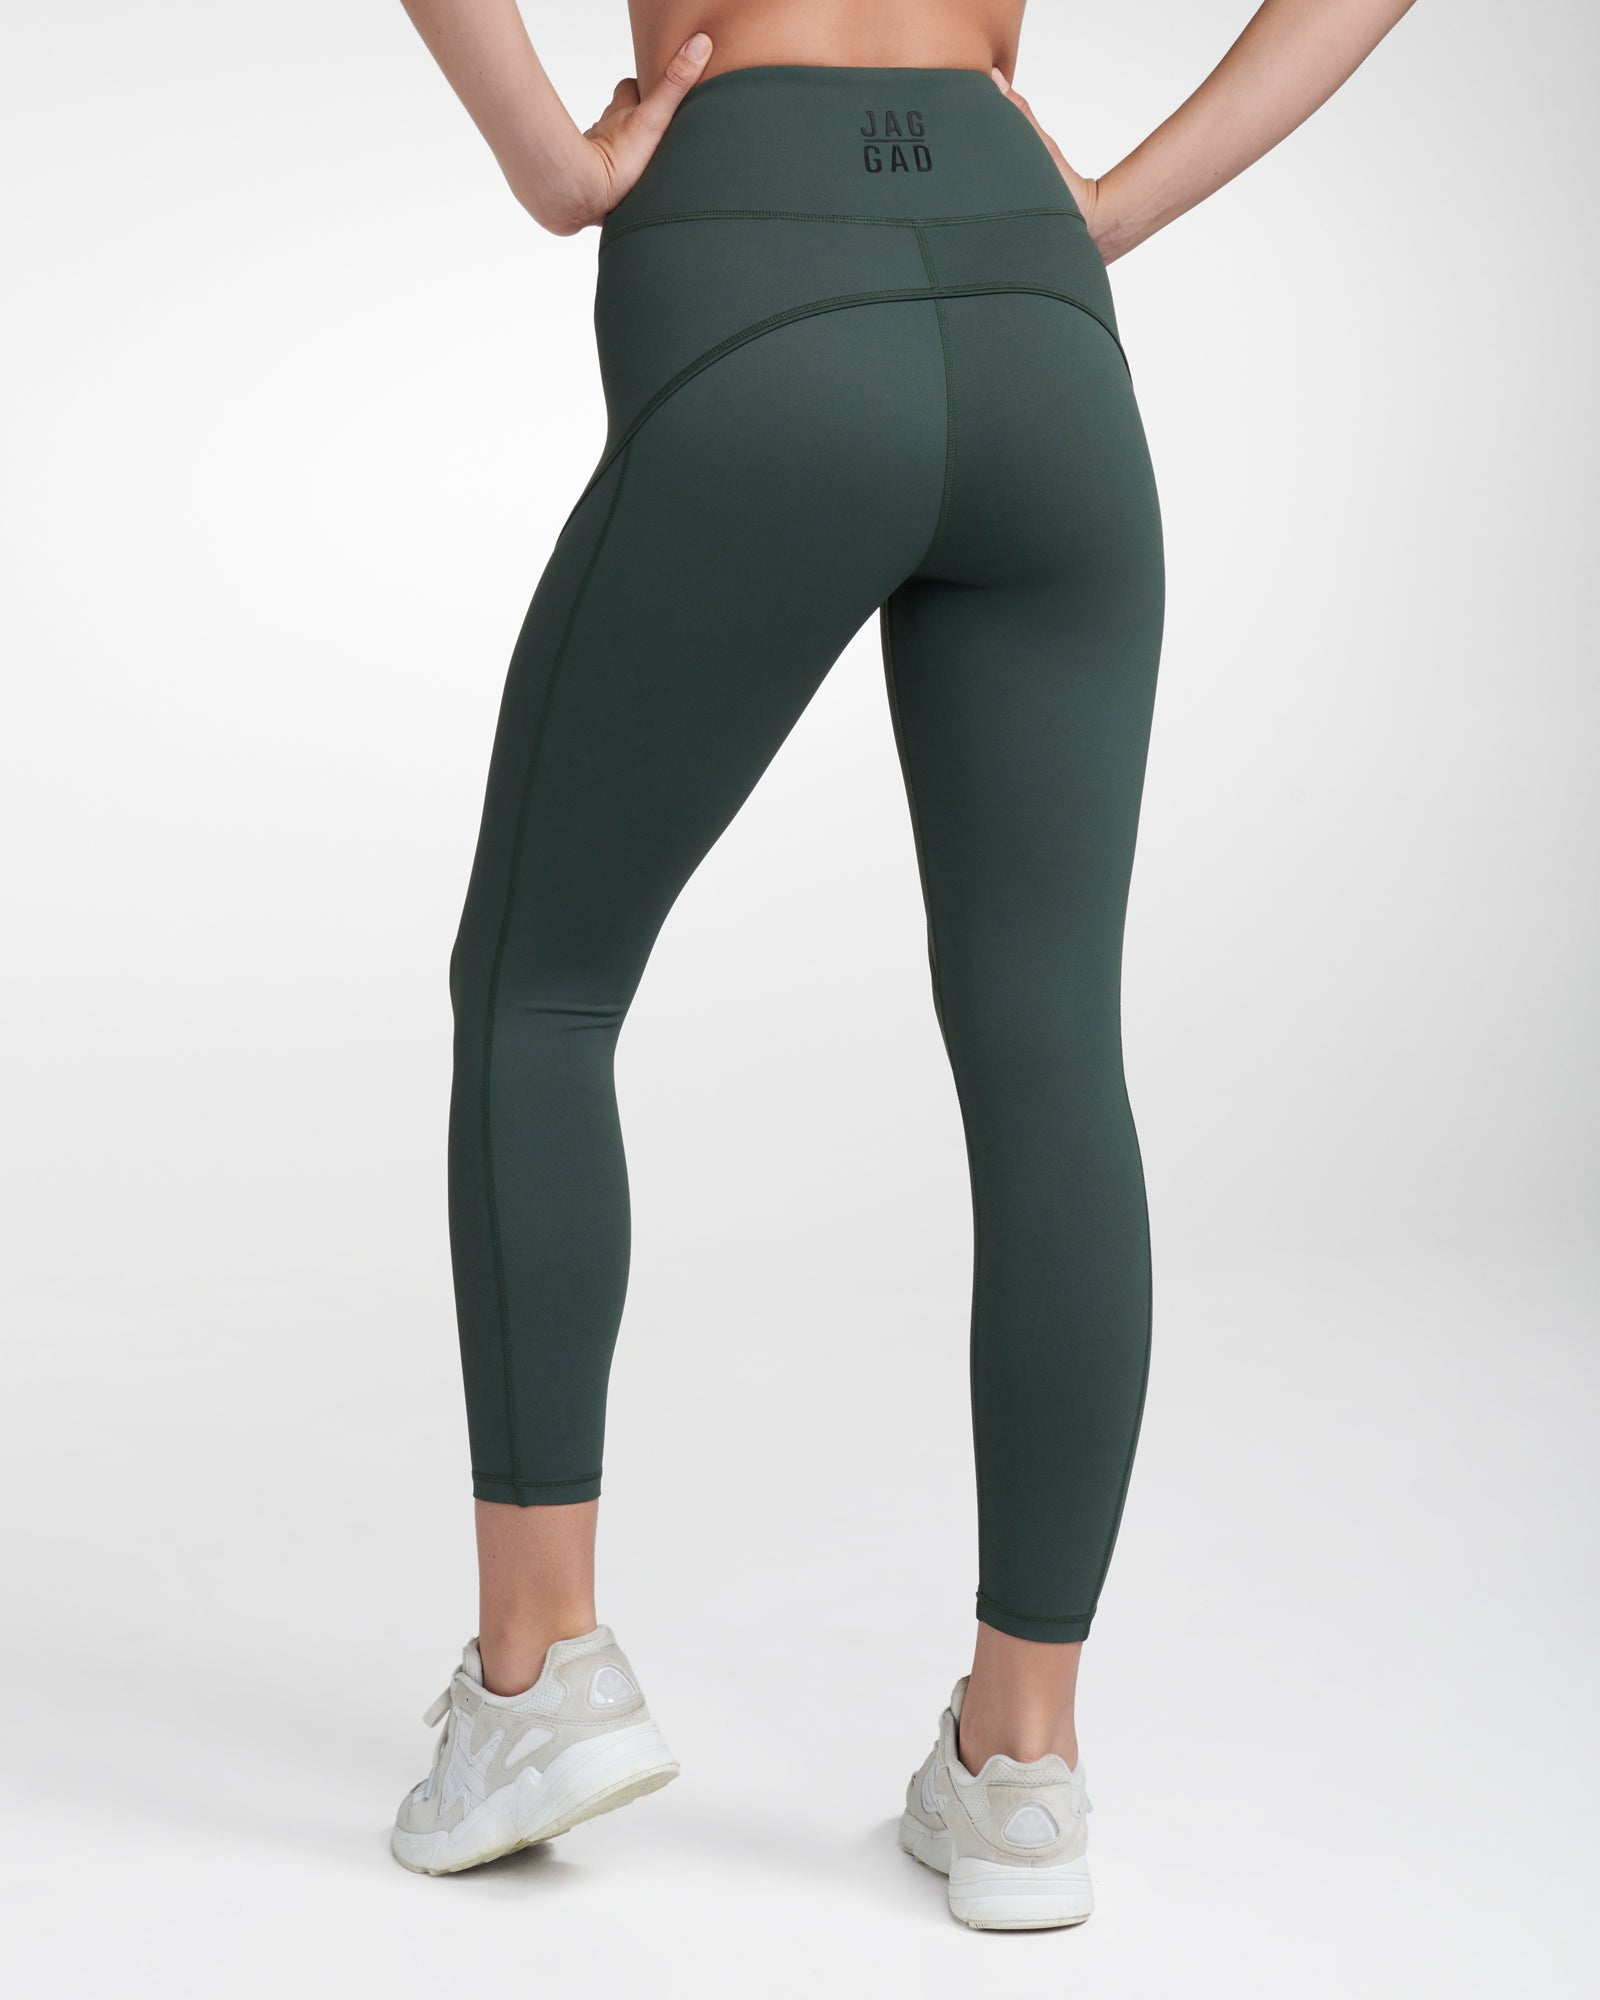 NAGARA REFLECT 7/8 ECO LEGGING